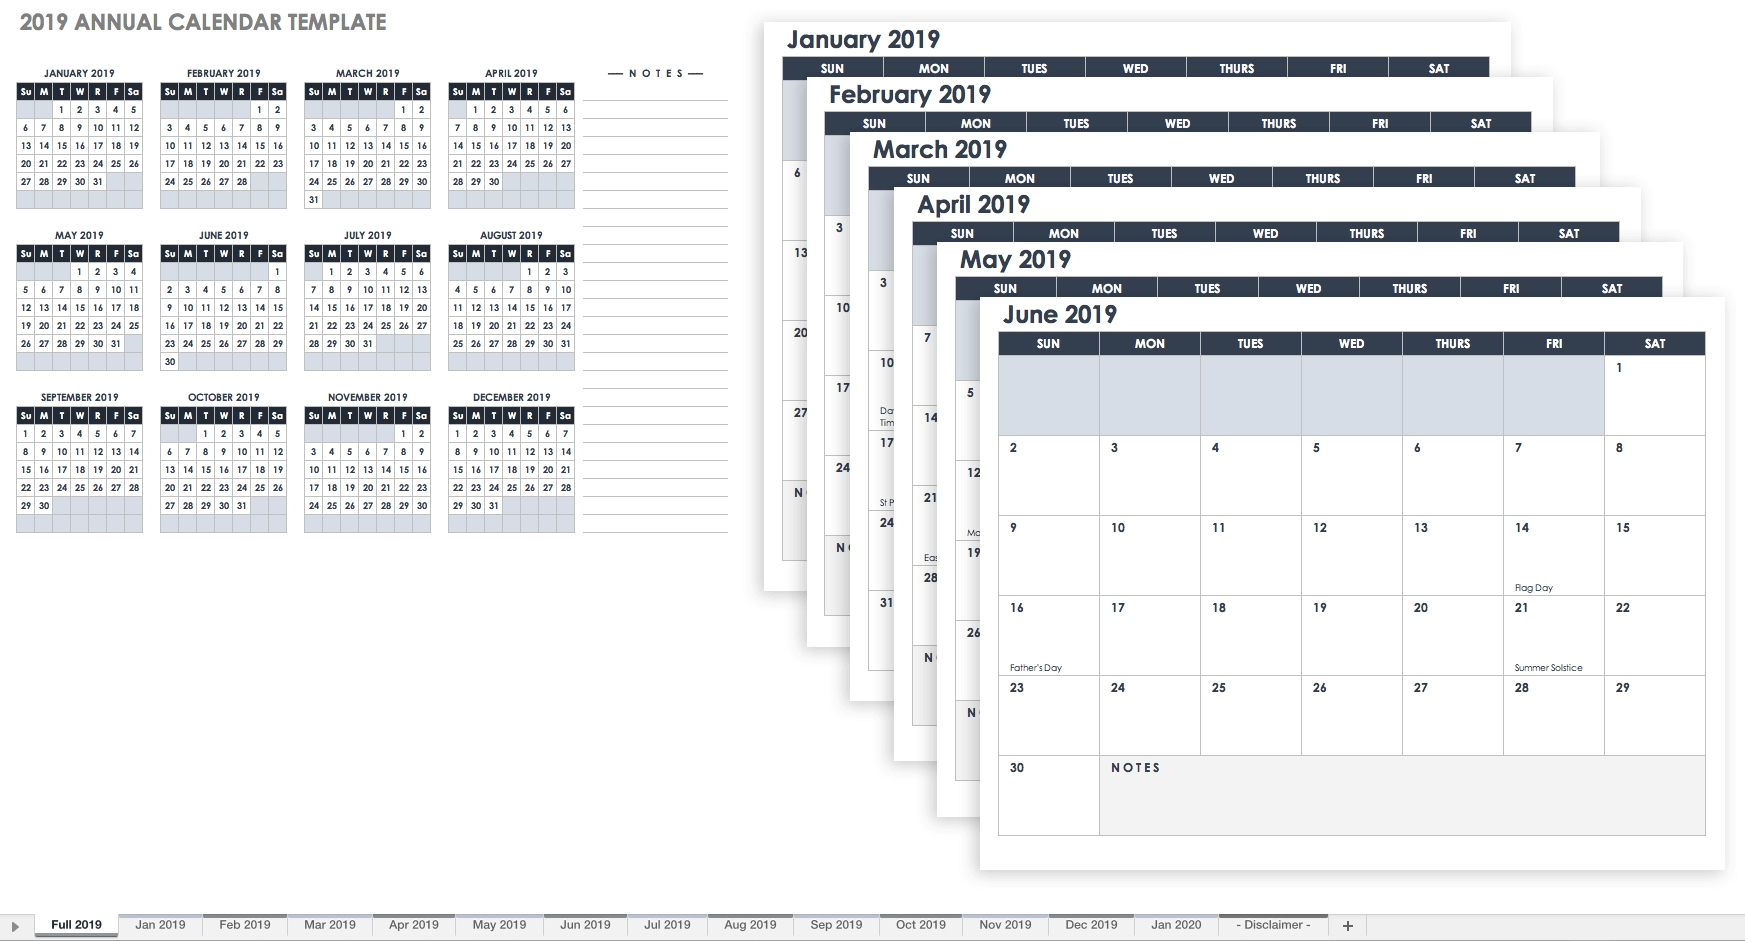 15 Free Monthly Calendar Templates | Smartsheet intended for 12 Month Calendar Print Out